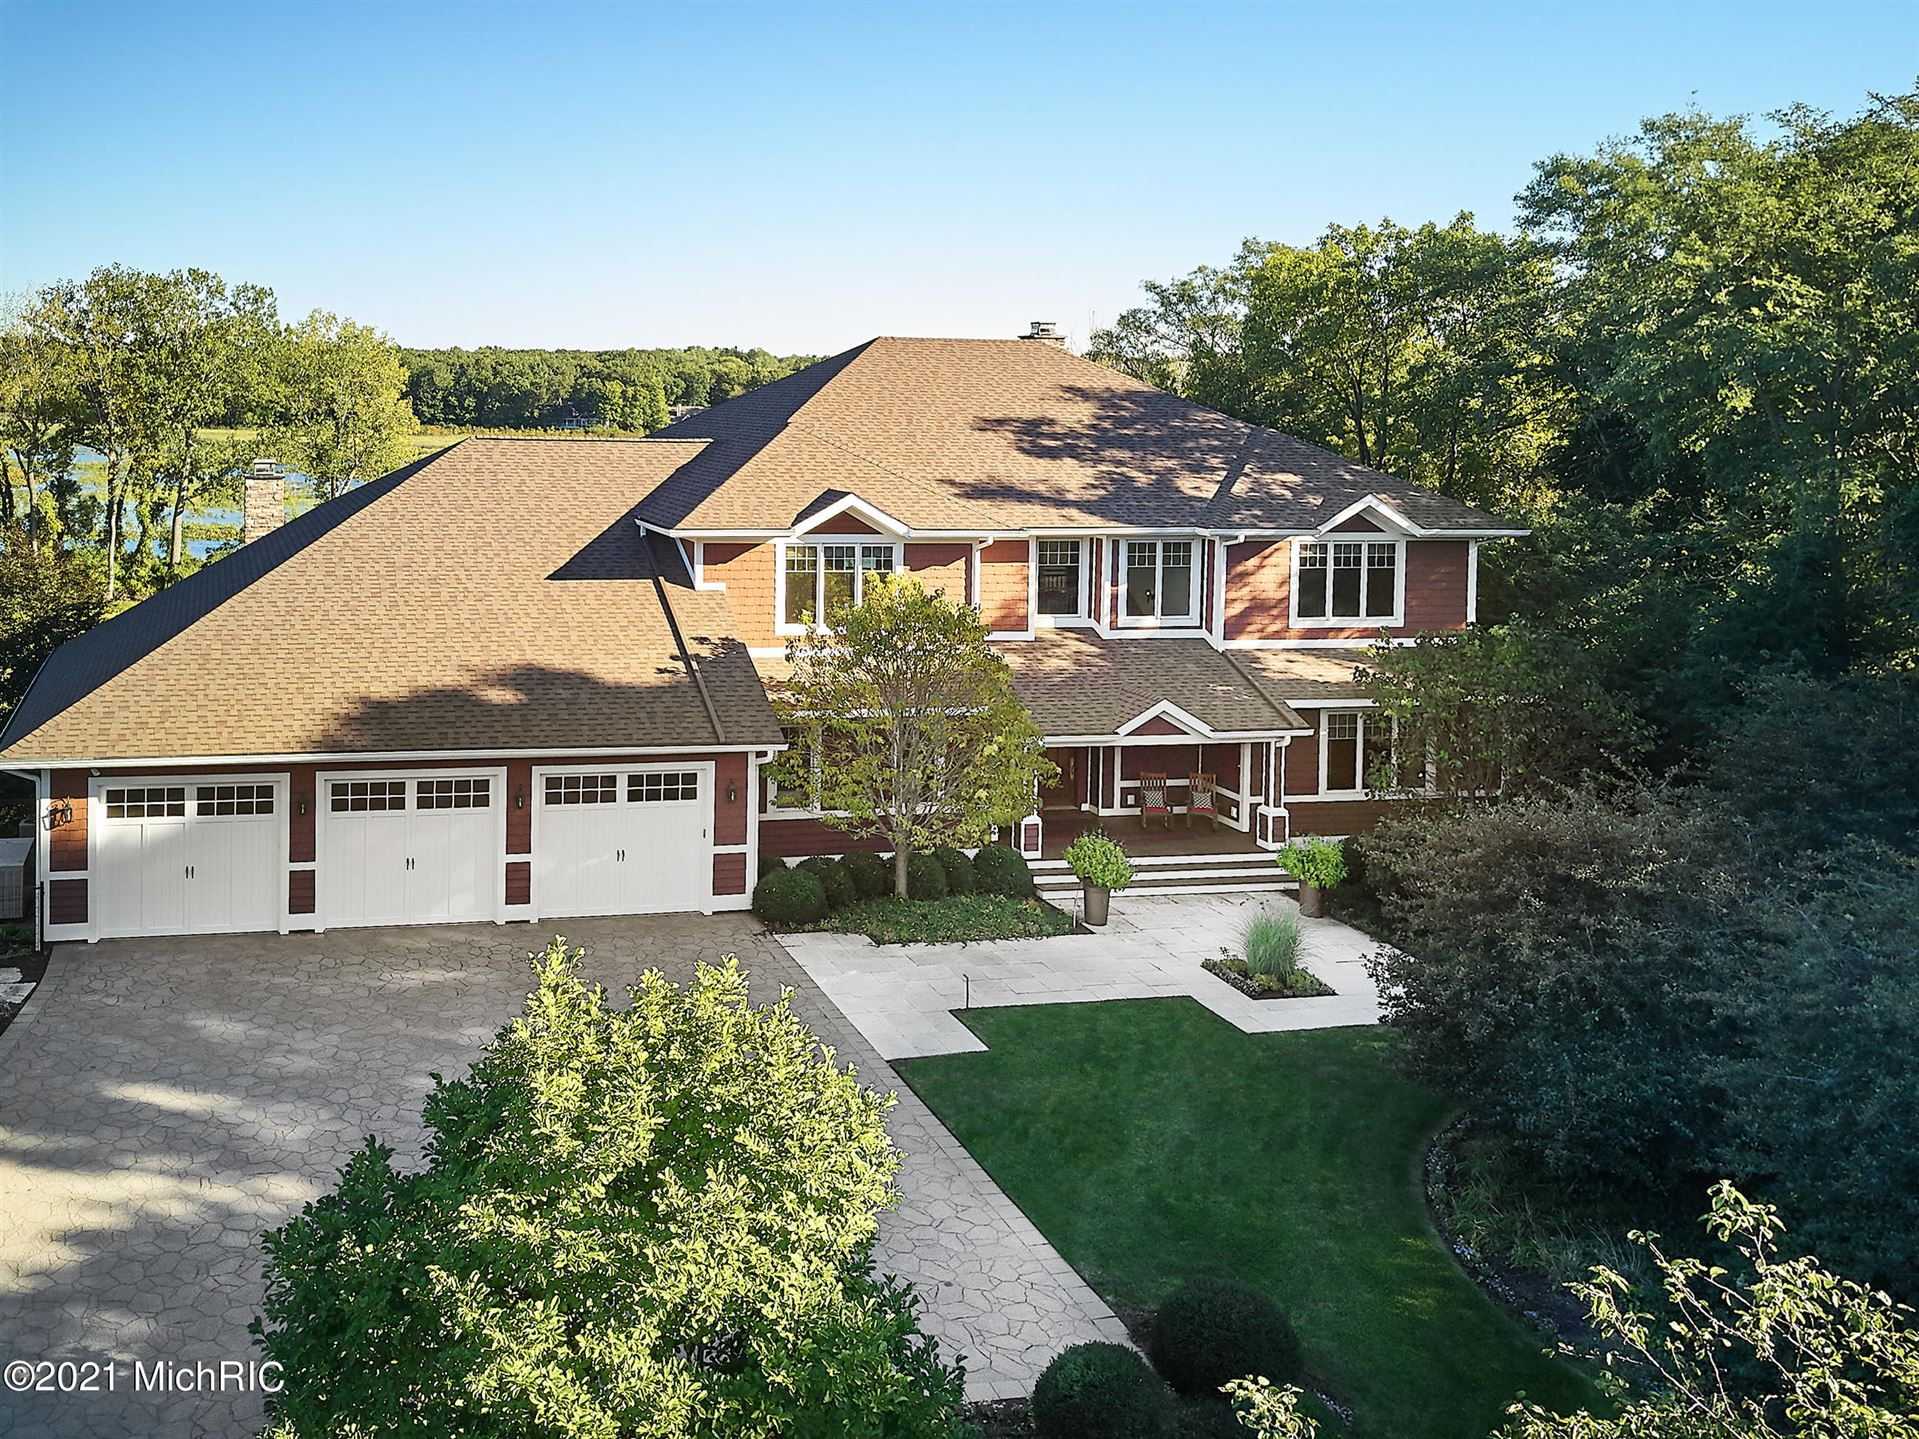 505 Marquette Drive, New Buffalo, MI 49117 - MLS#: 21005128